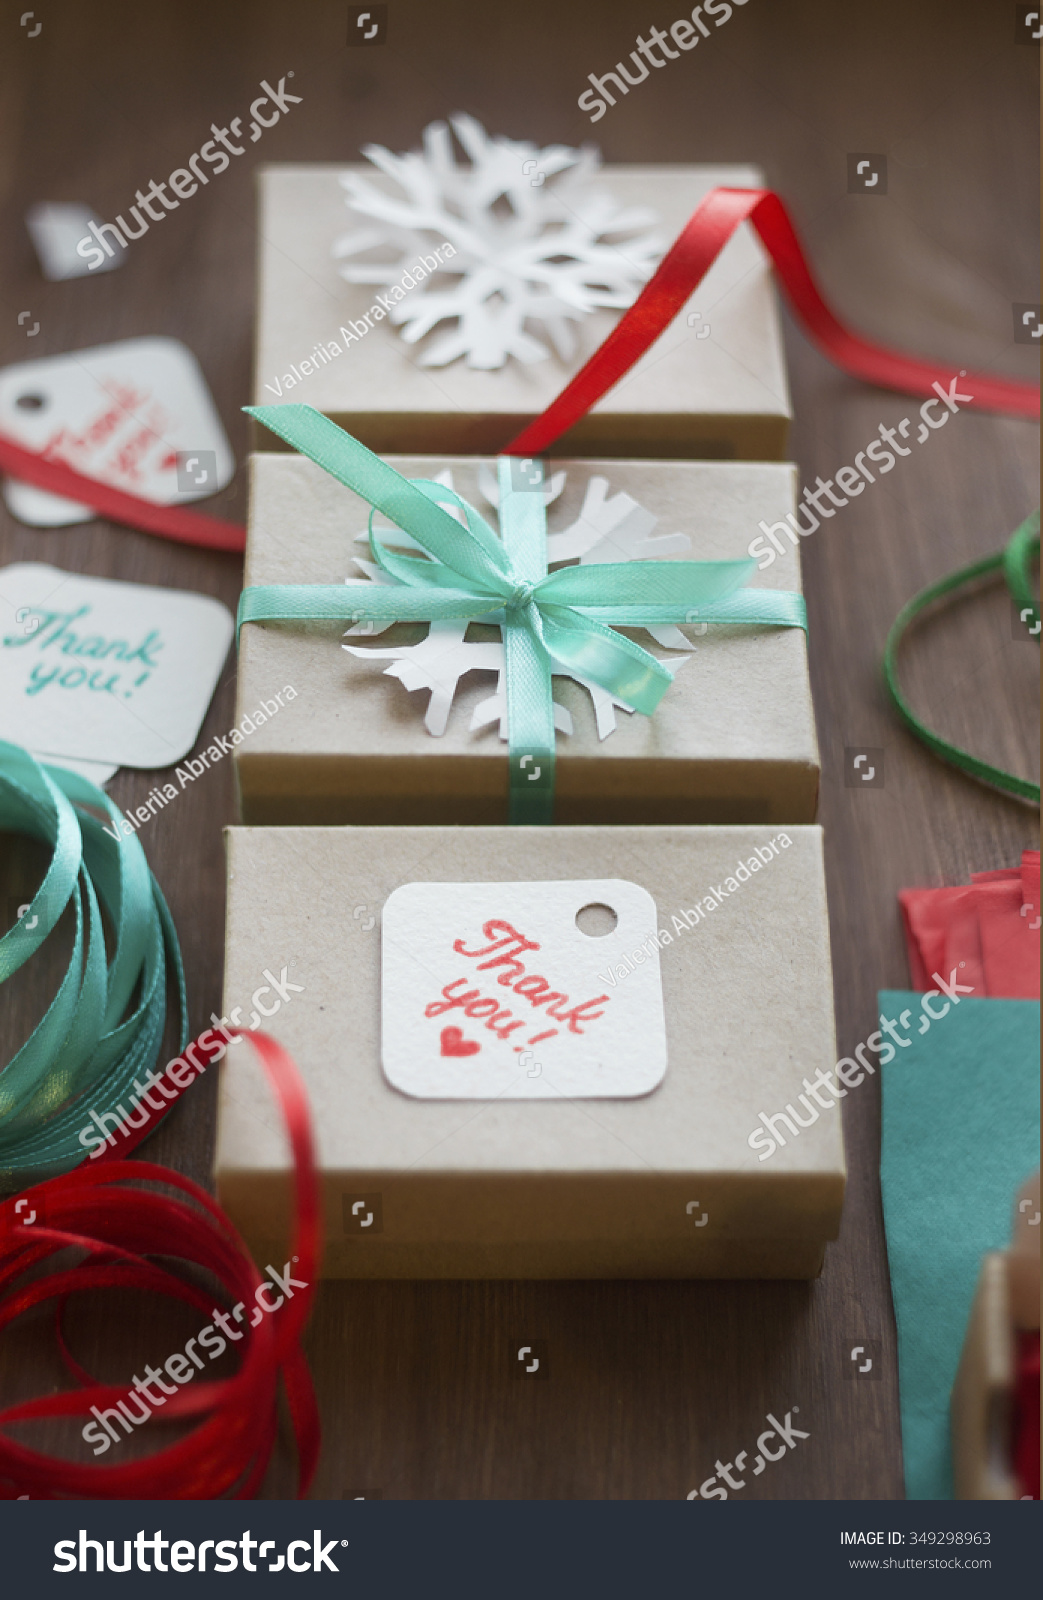 Still life holiday gift wrapping wrapping stock photo 349298963 still life with holiday gift wrapping wrapping process packaging materials do it yourself solutioingenieria Images